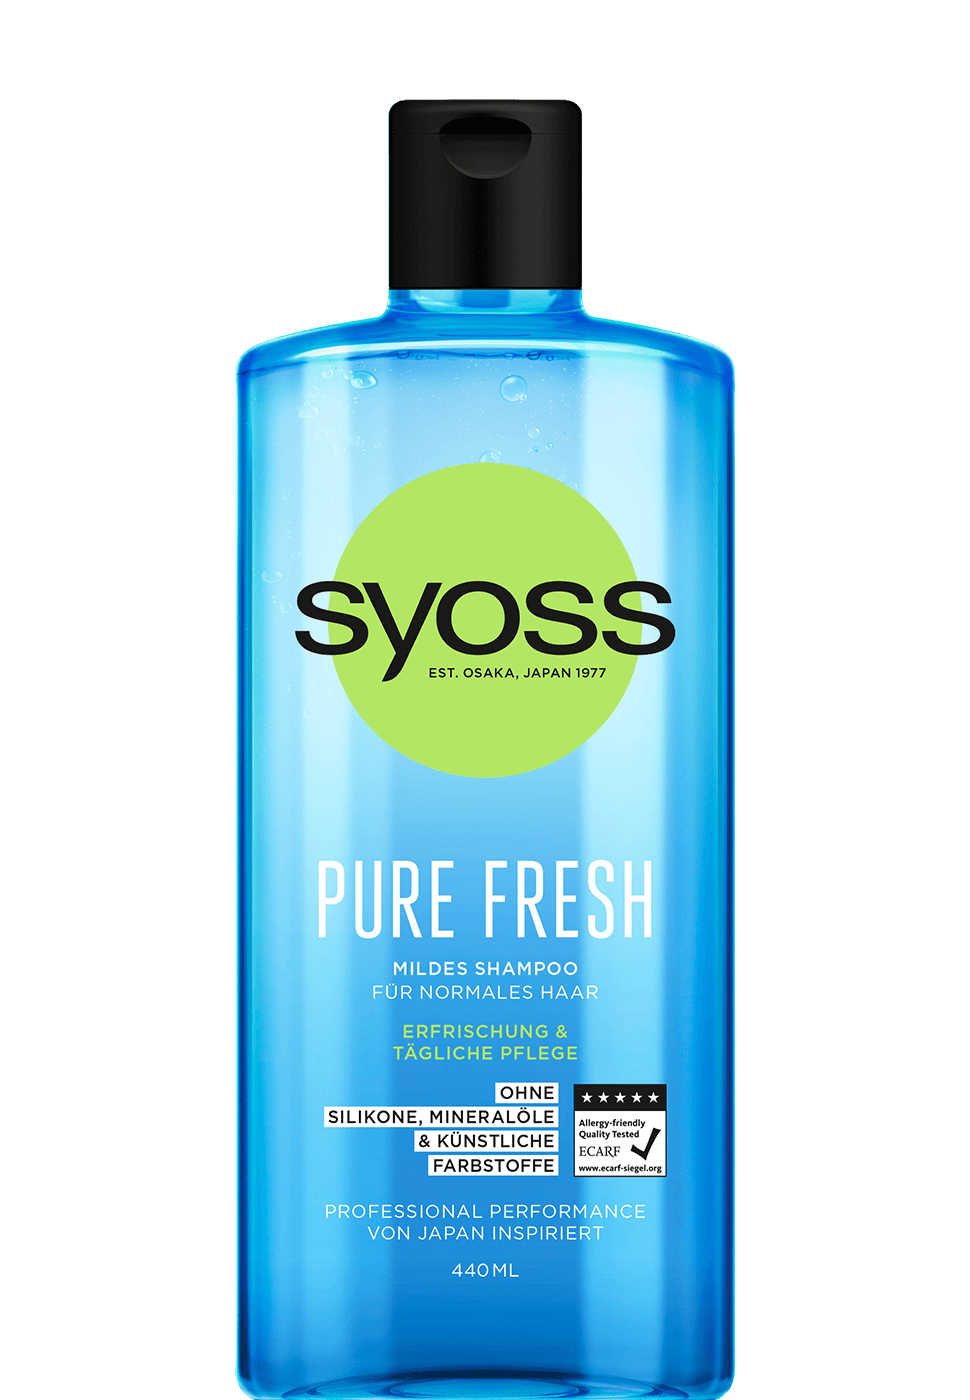 syoss_de_care_pure_fresh_shampoo_970x1400